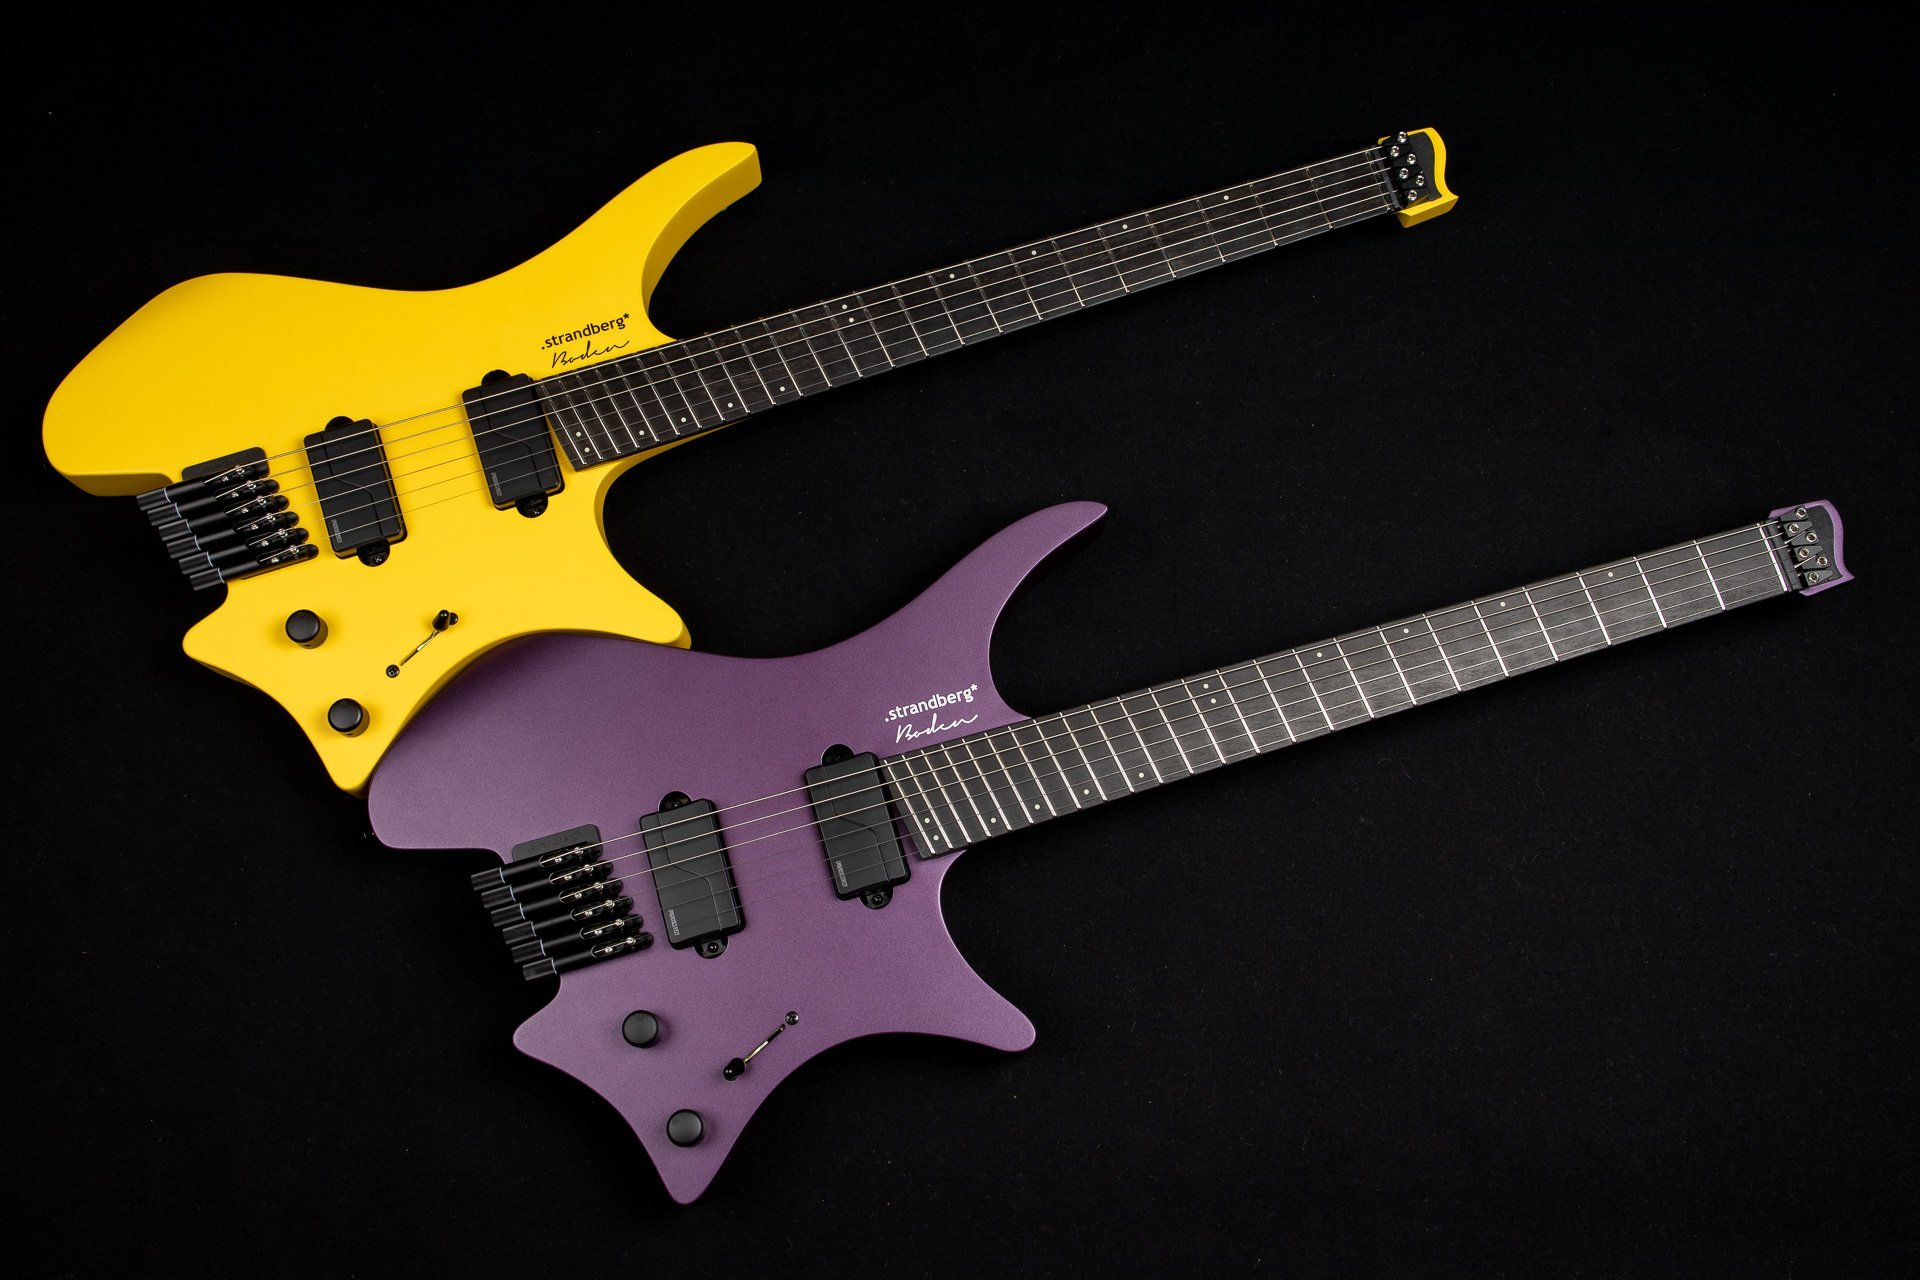 Headless Guitar Boden Metal purple and yellow front view side by side